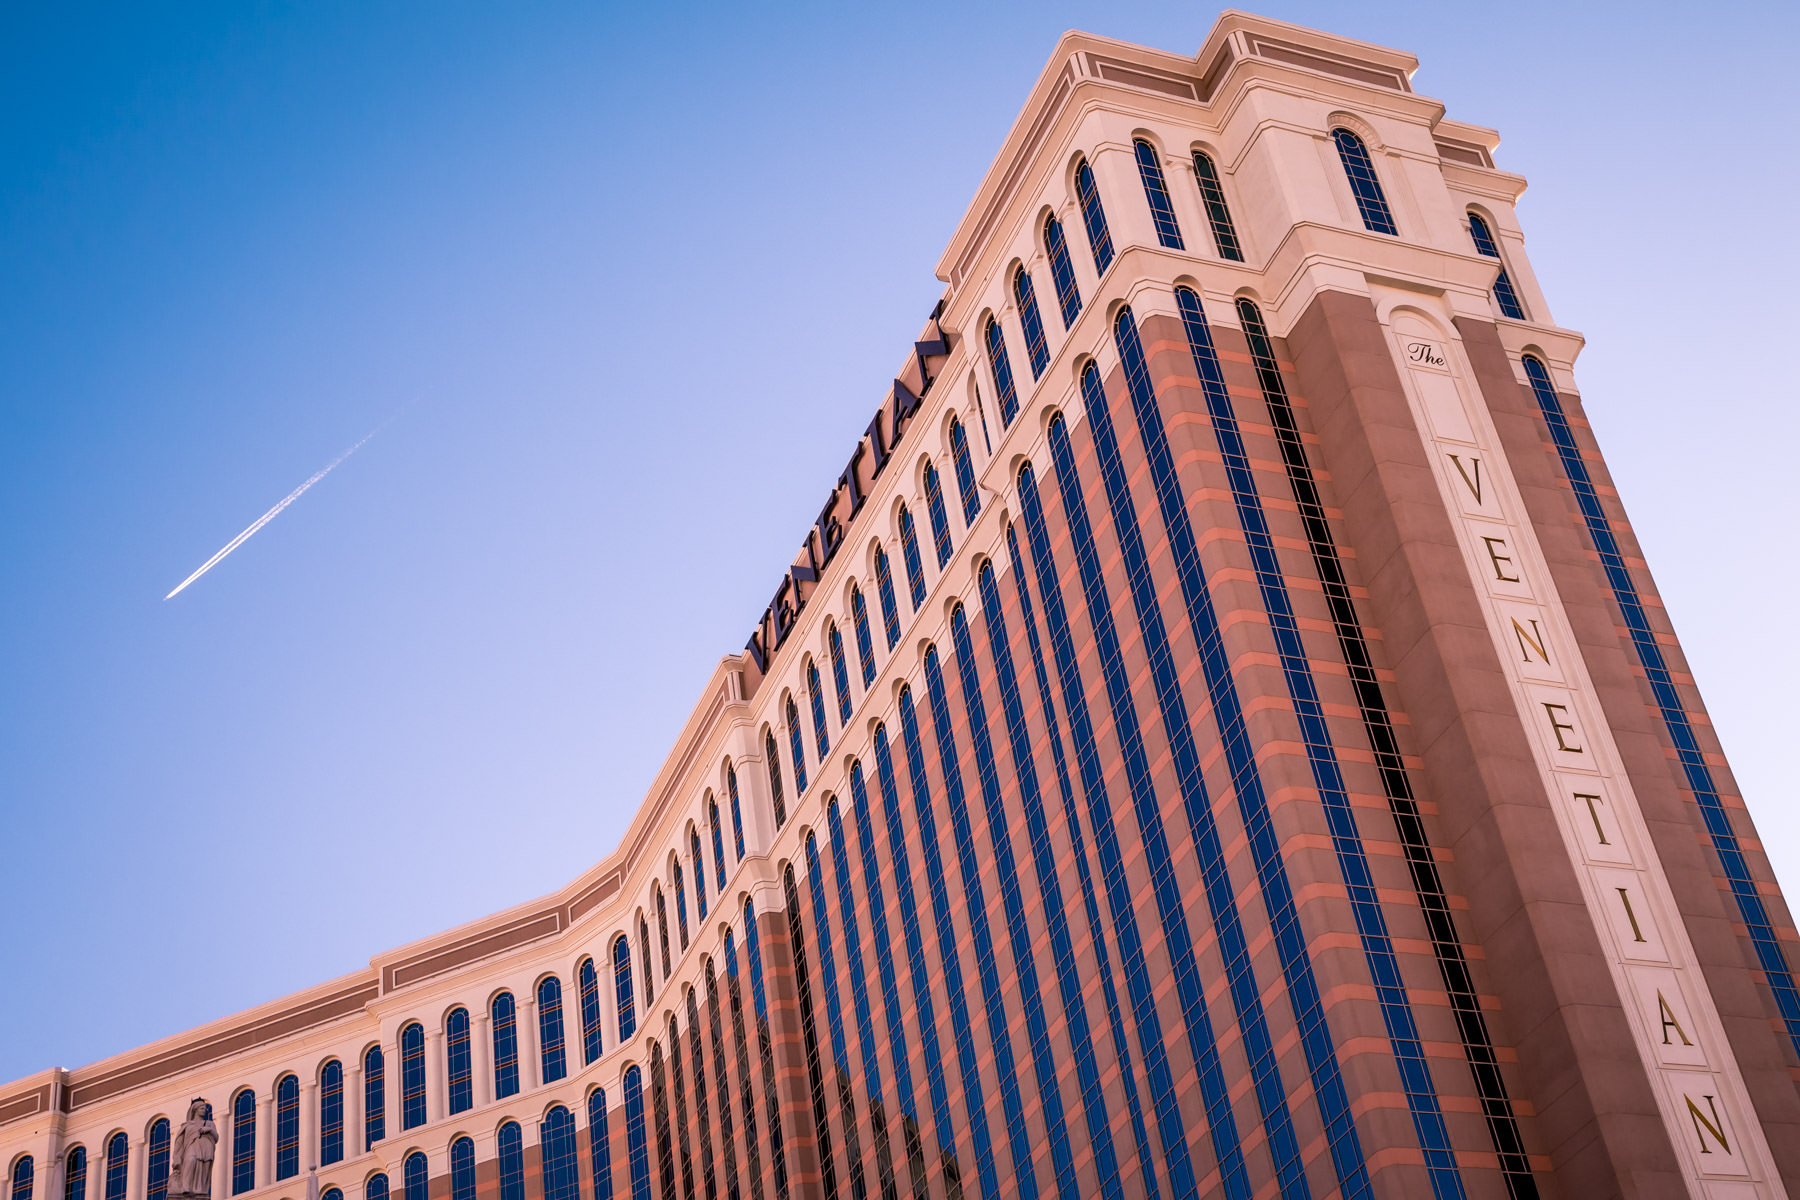 A high-flying jet leaves a contrail over Las Vegas' Venetian Hotel and Casino.